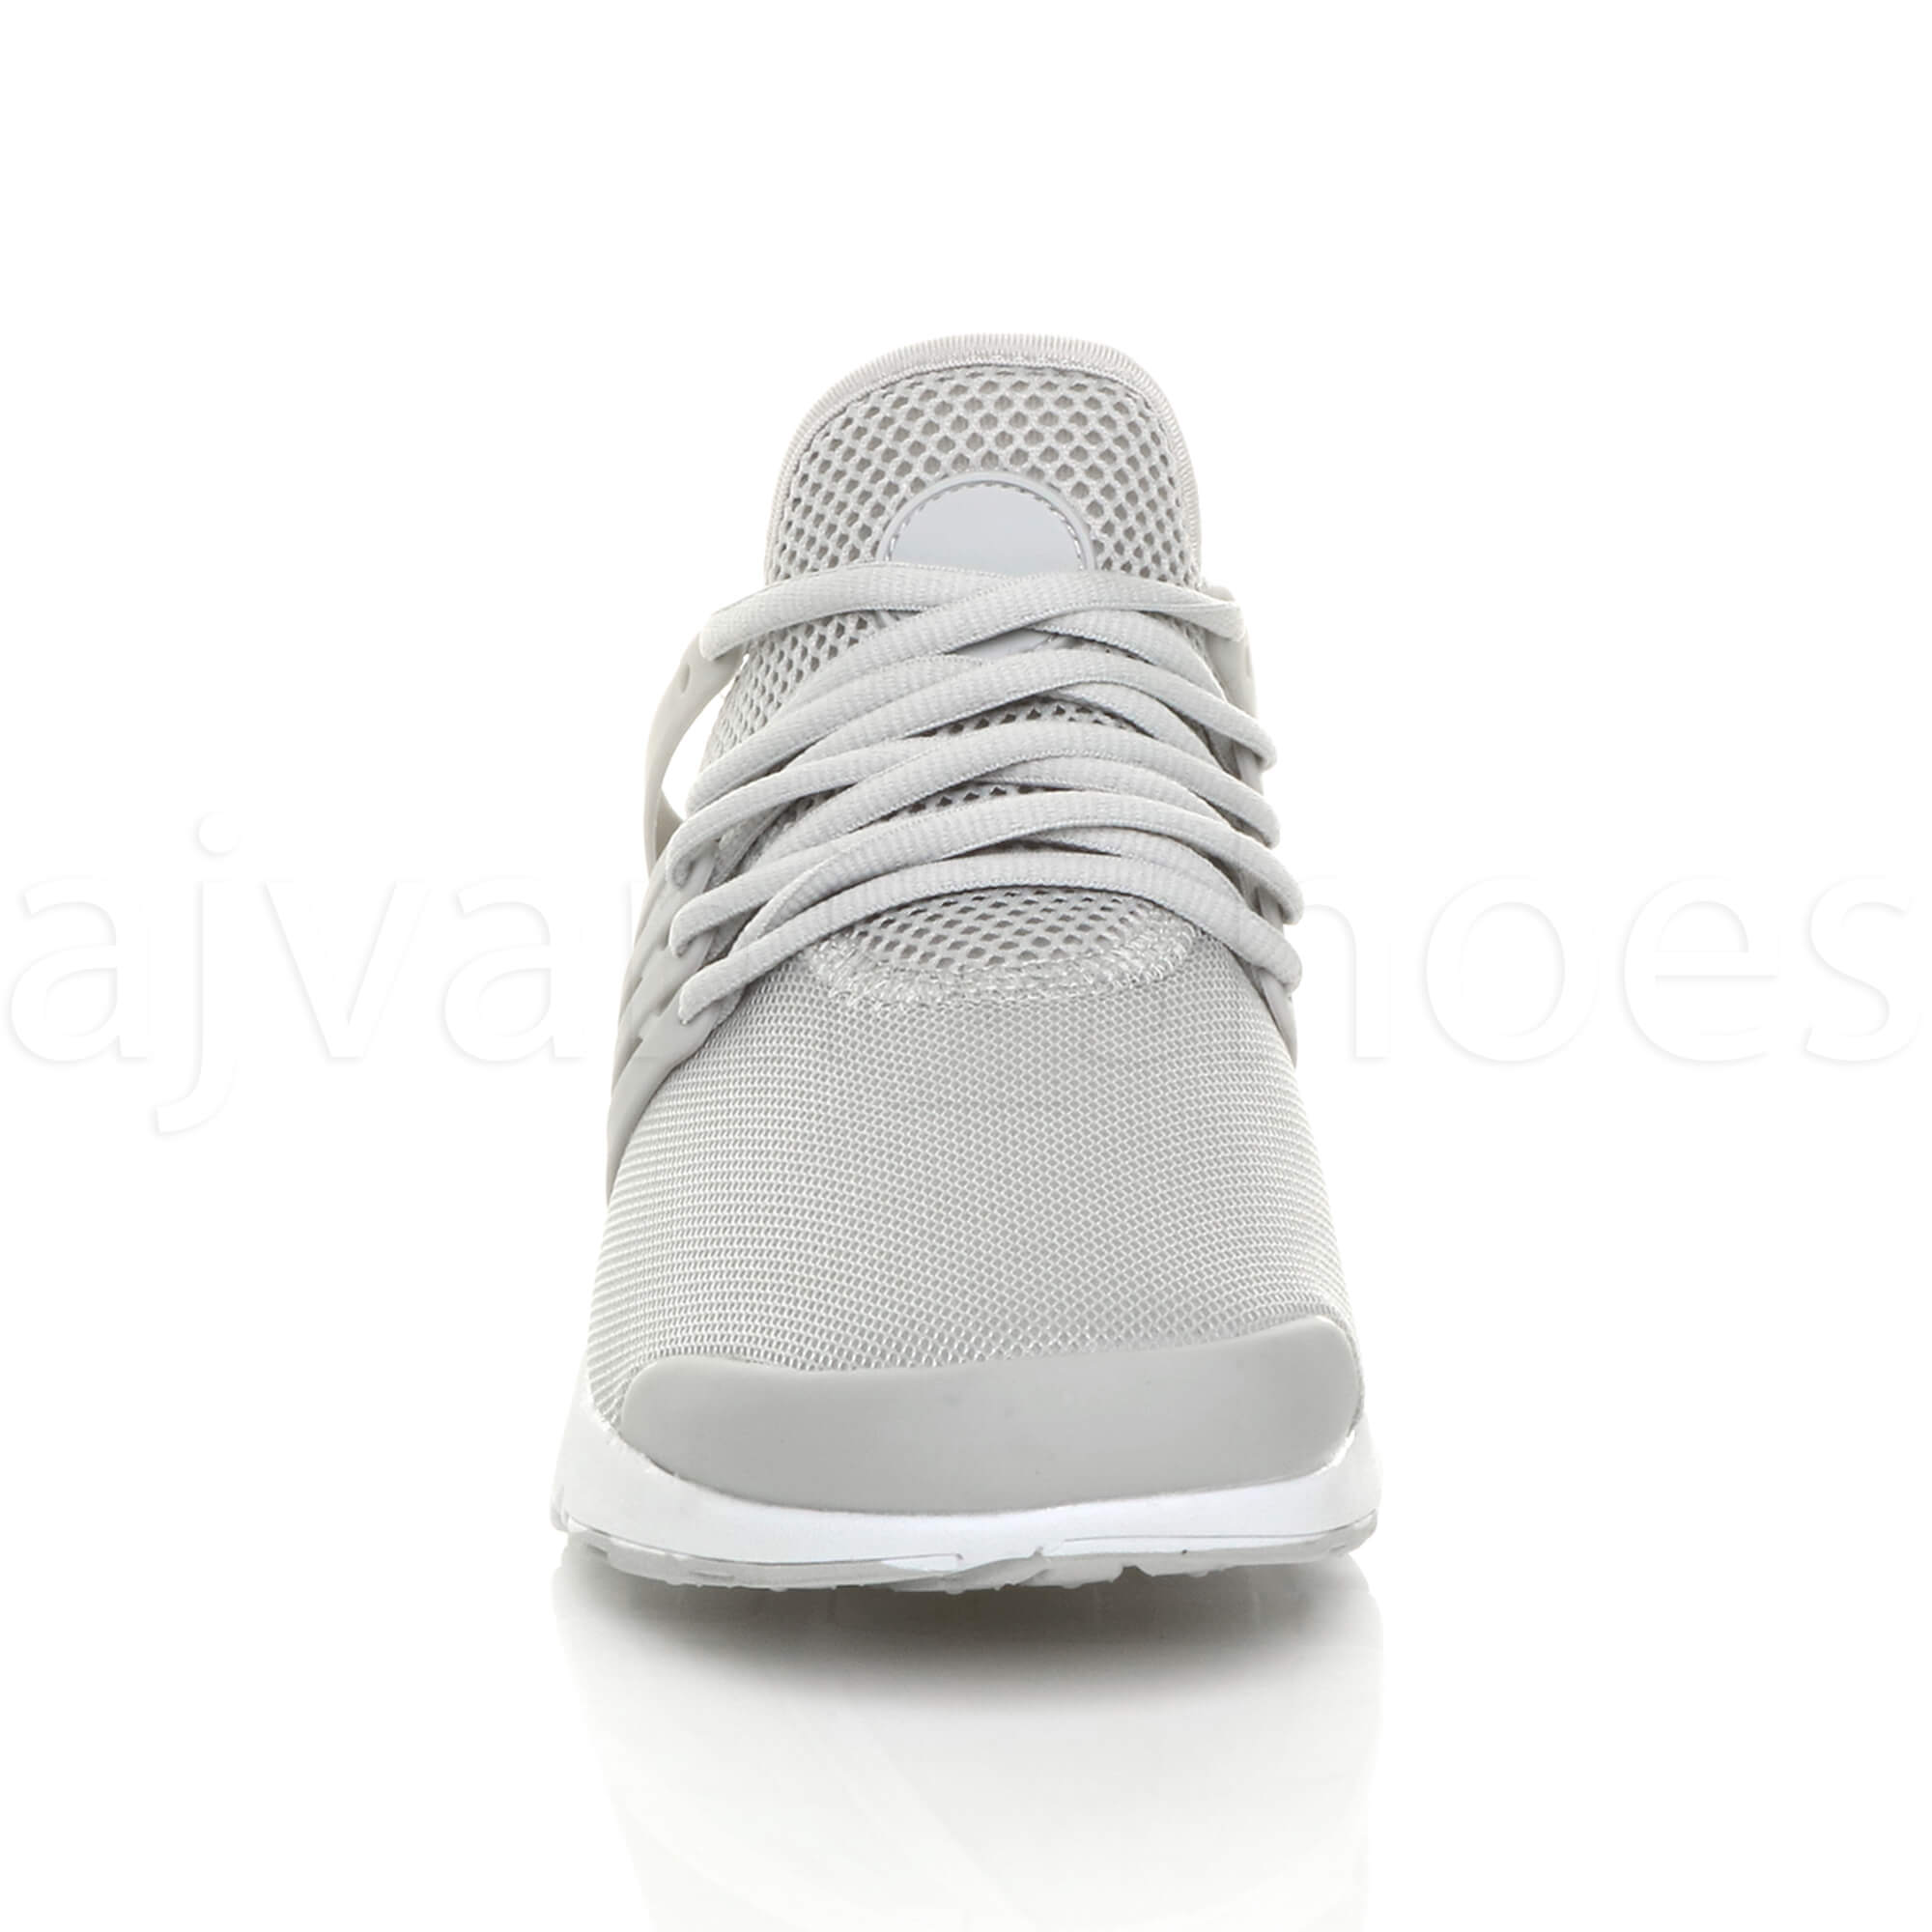 MENS LACE UP SPORTS GYM FITNESS RUNNING FLEXIBLE TRAINERS SNEAKERS SIZE 12 46